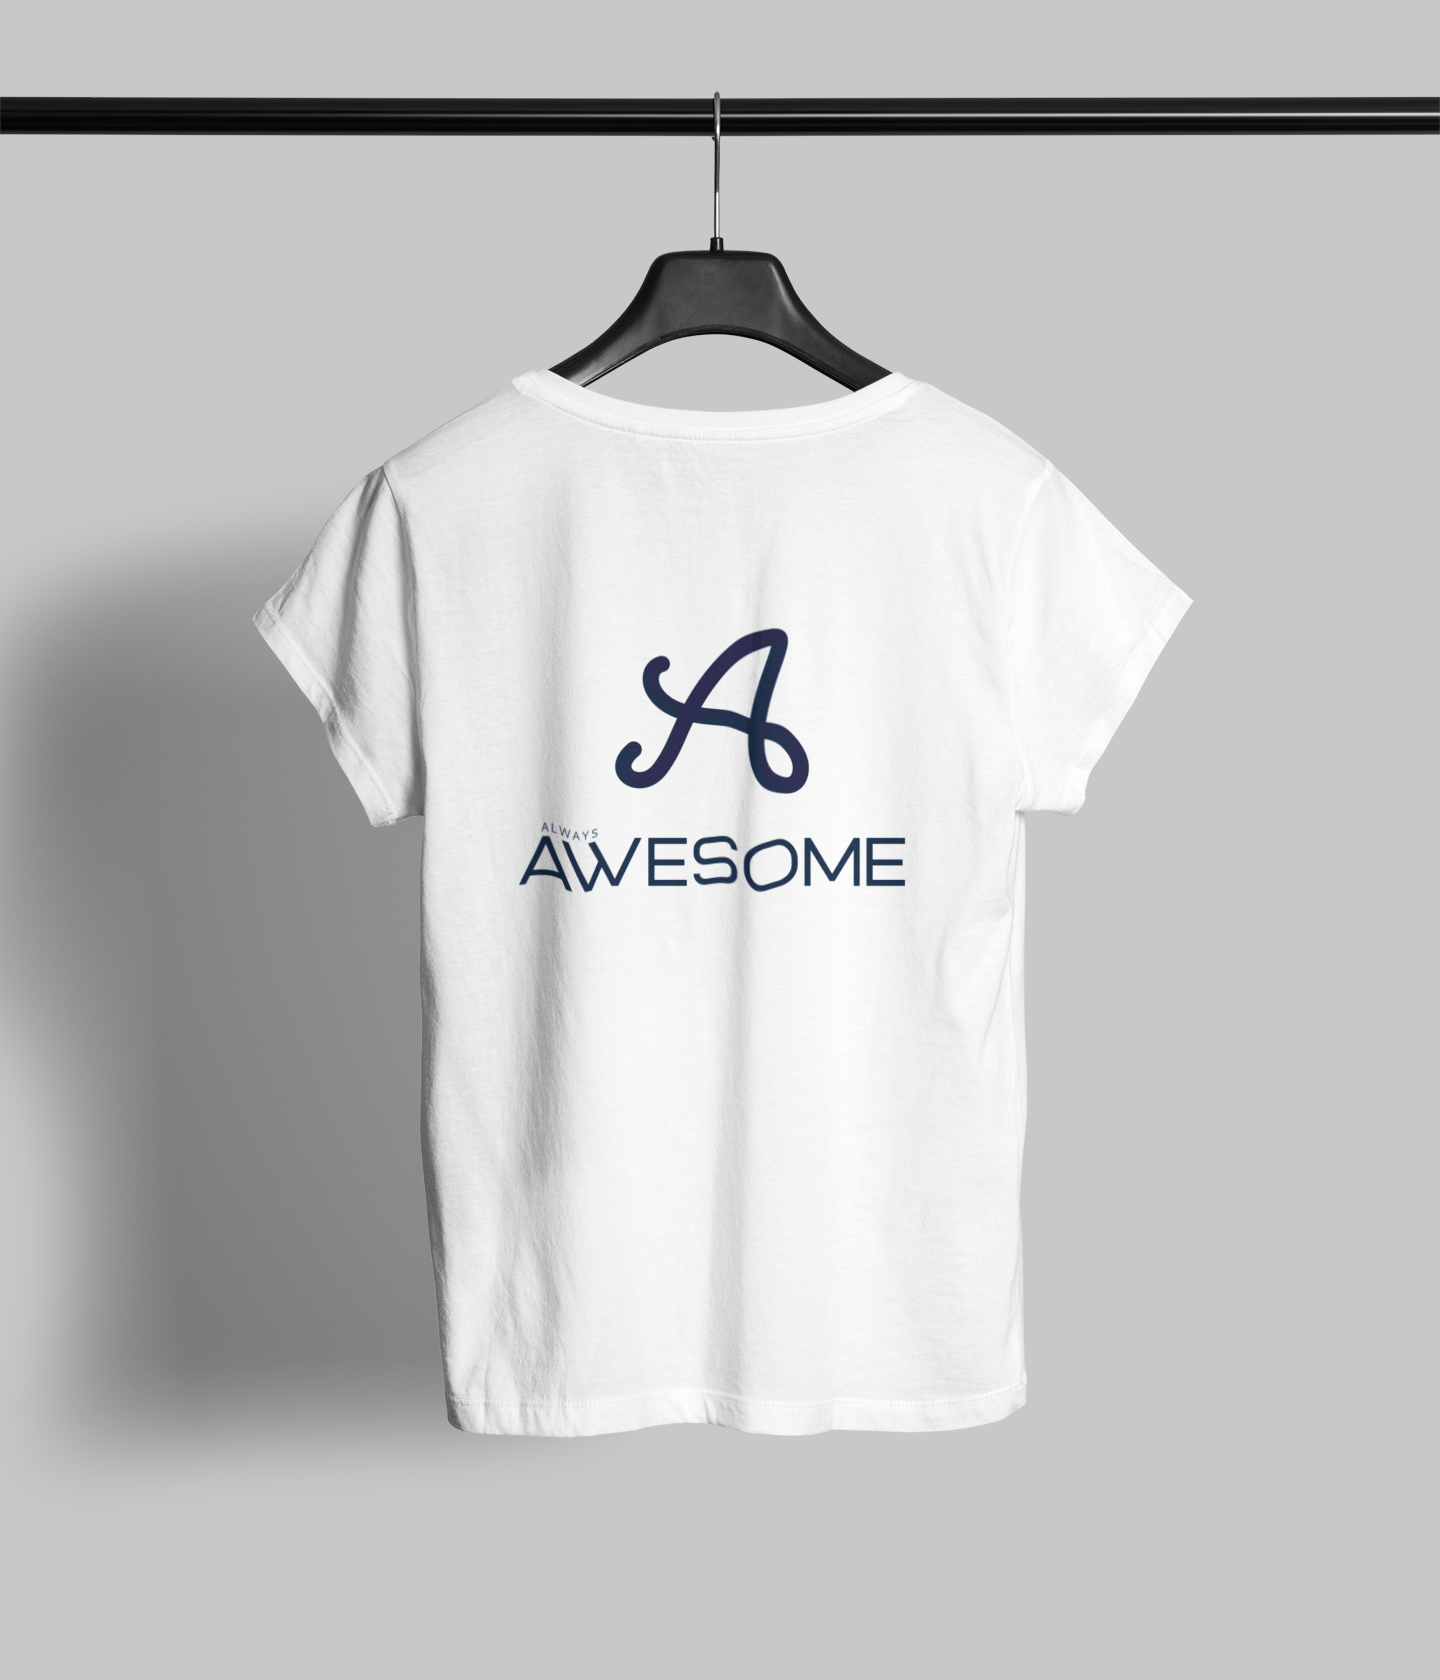 Always Awesome Clothing Printrove White 1